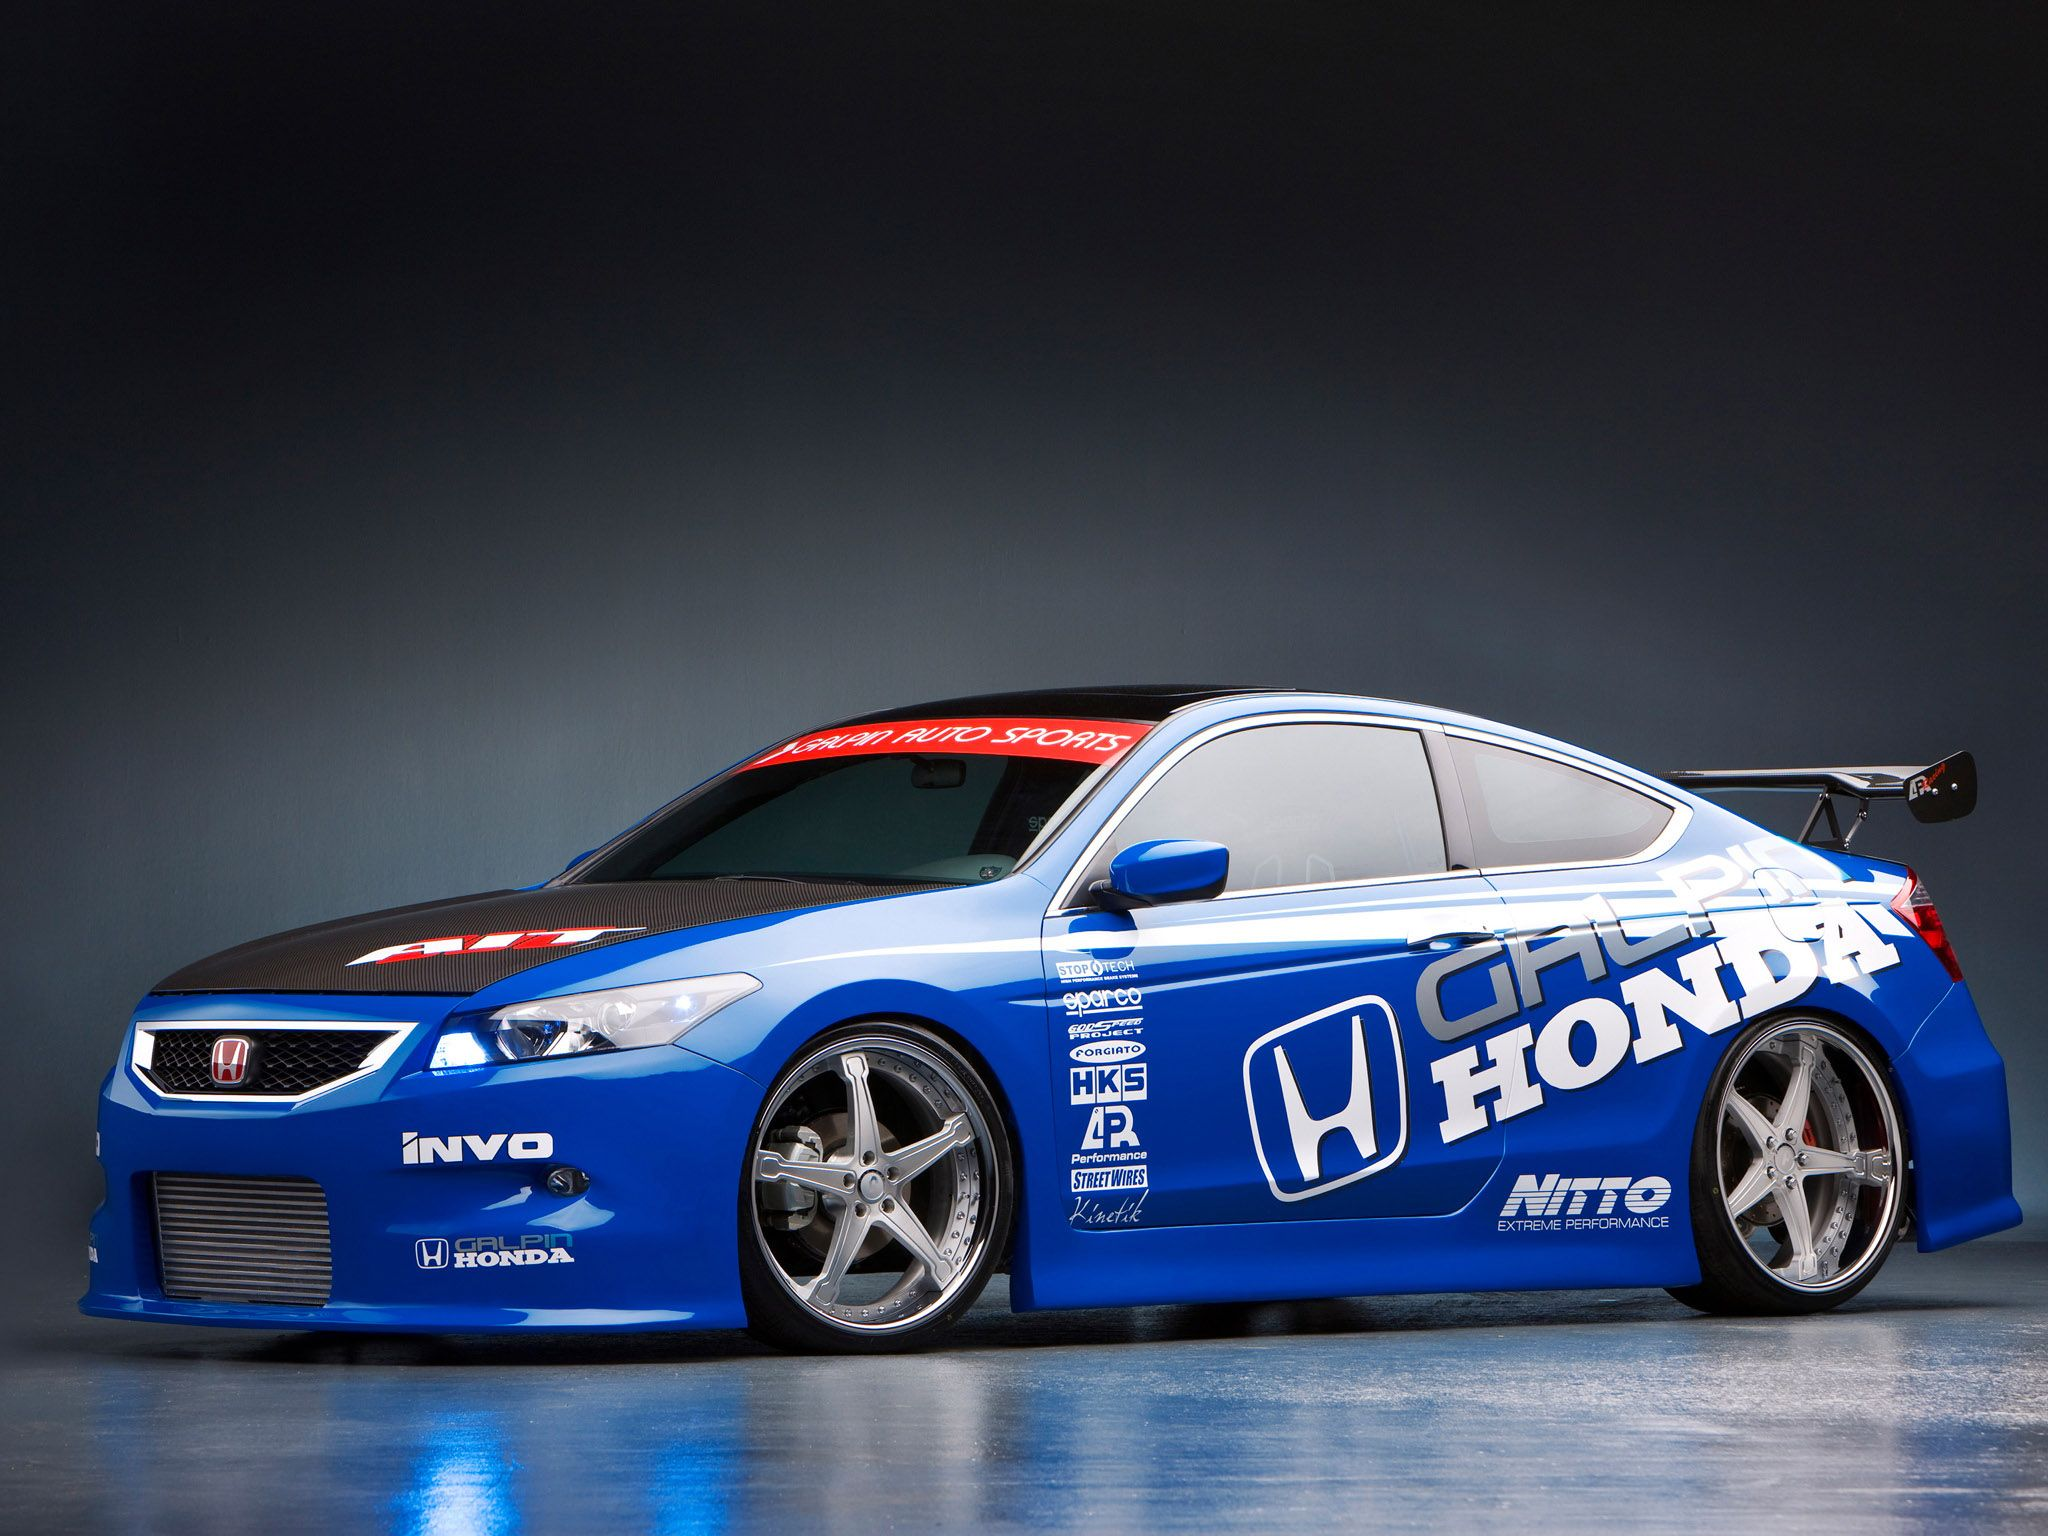 Best 20 honda sports car ideas on pinterest fast sports cars sports car price and racing car design